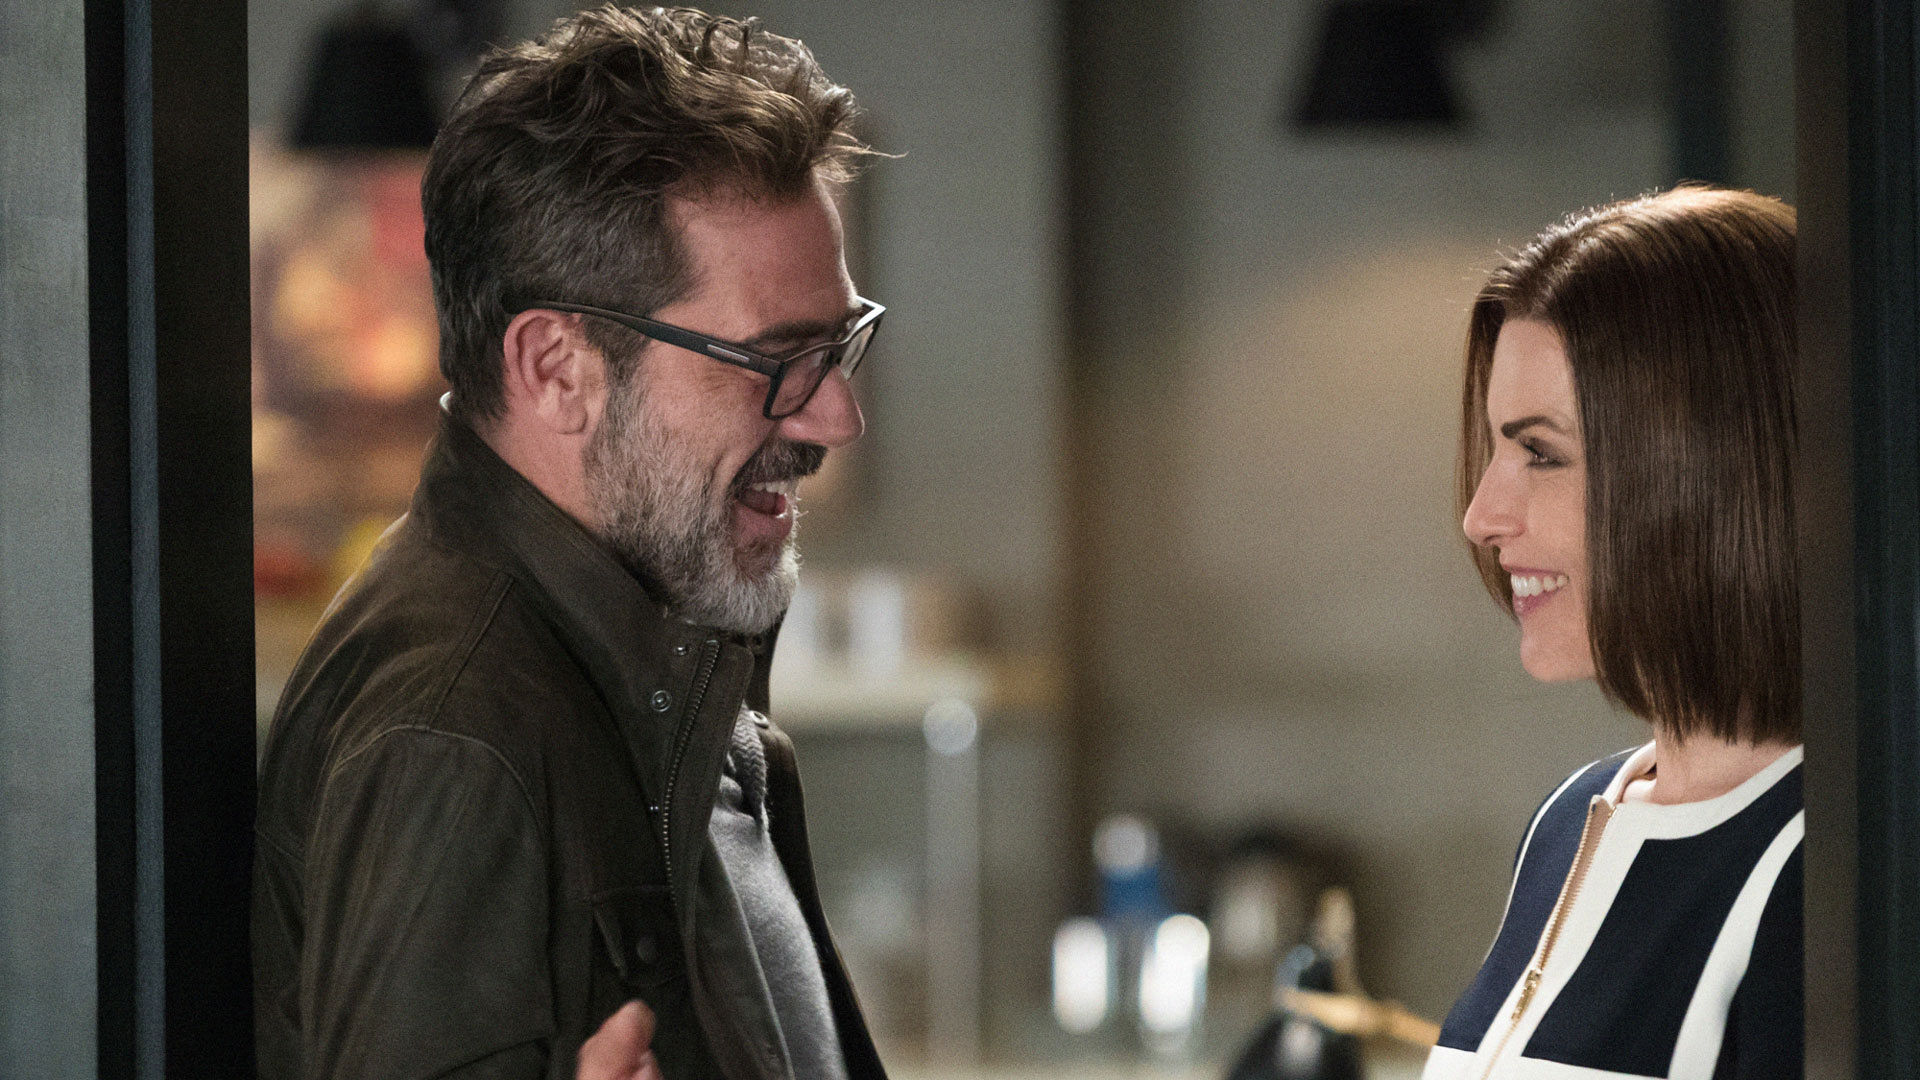 Jeffrey Dean Morgan as Jason Crouse and Julianna Margulies as Alicia Florrick